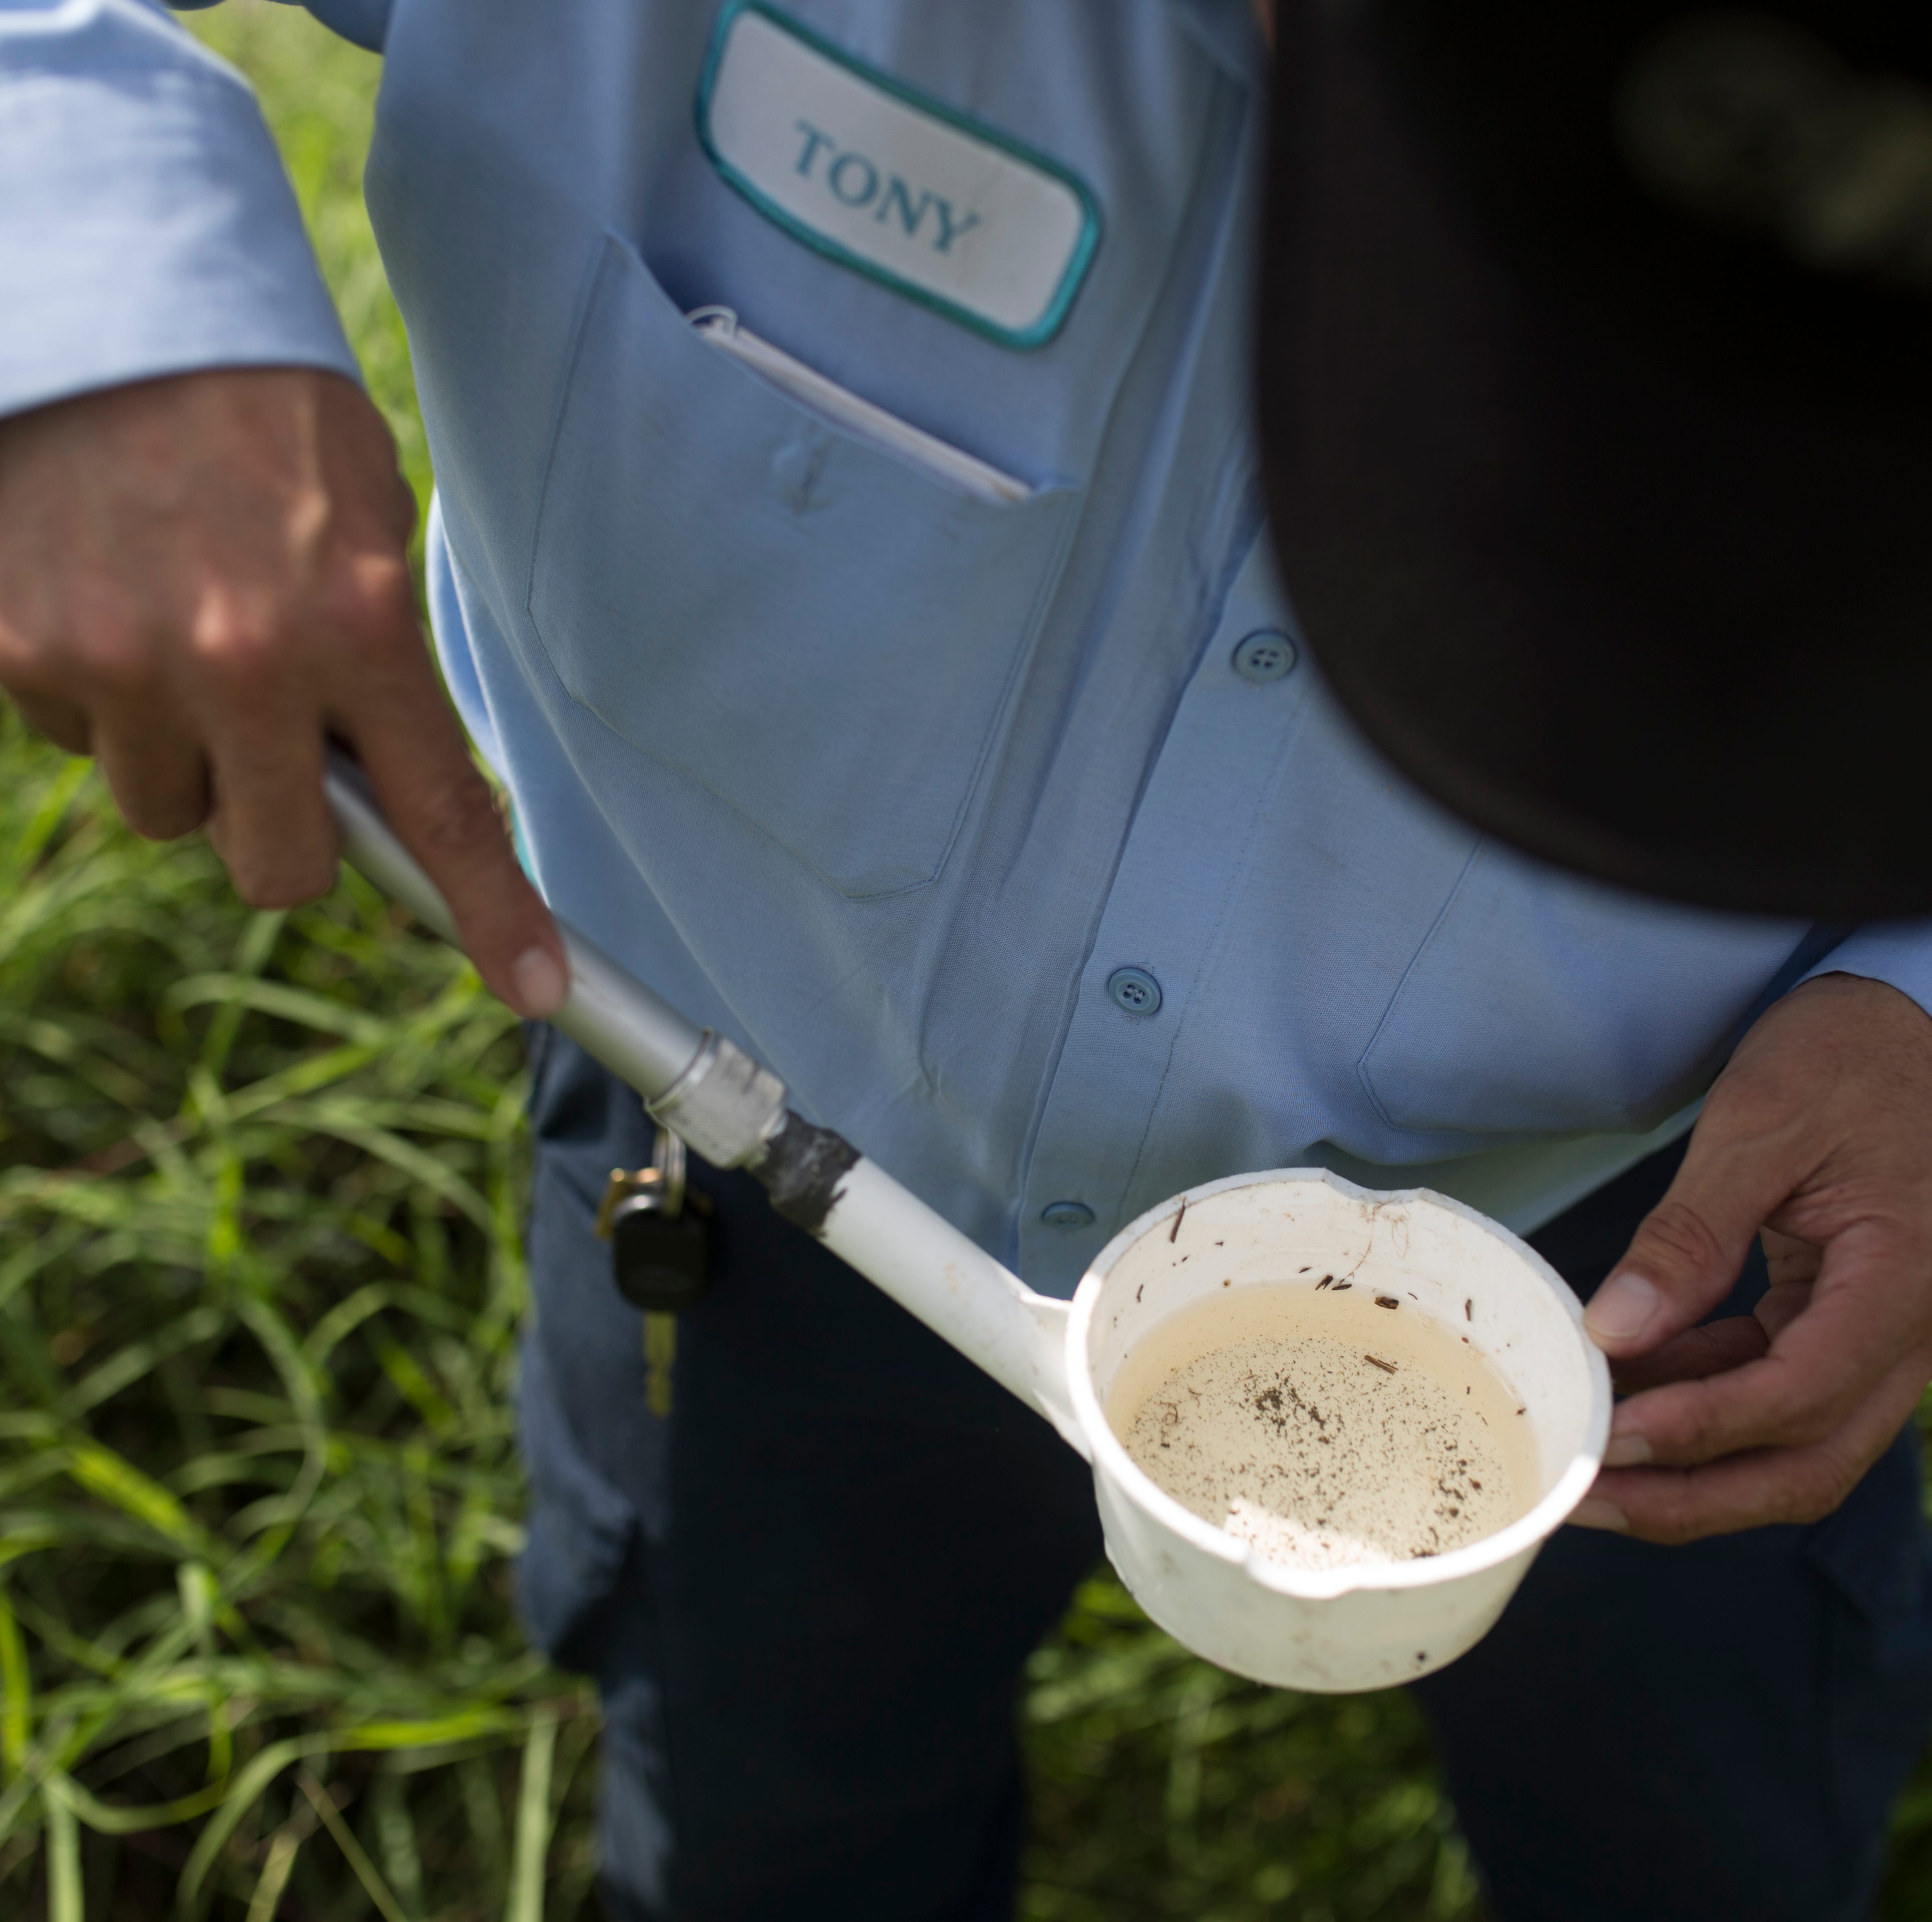 Corpus Christi Vector Control works to keep mosquitos under control